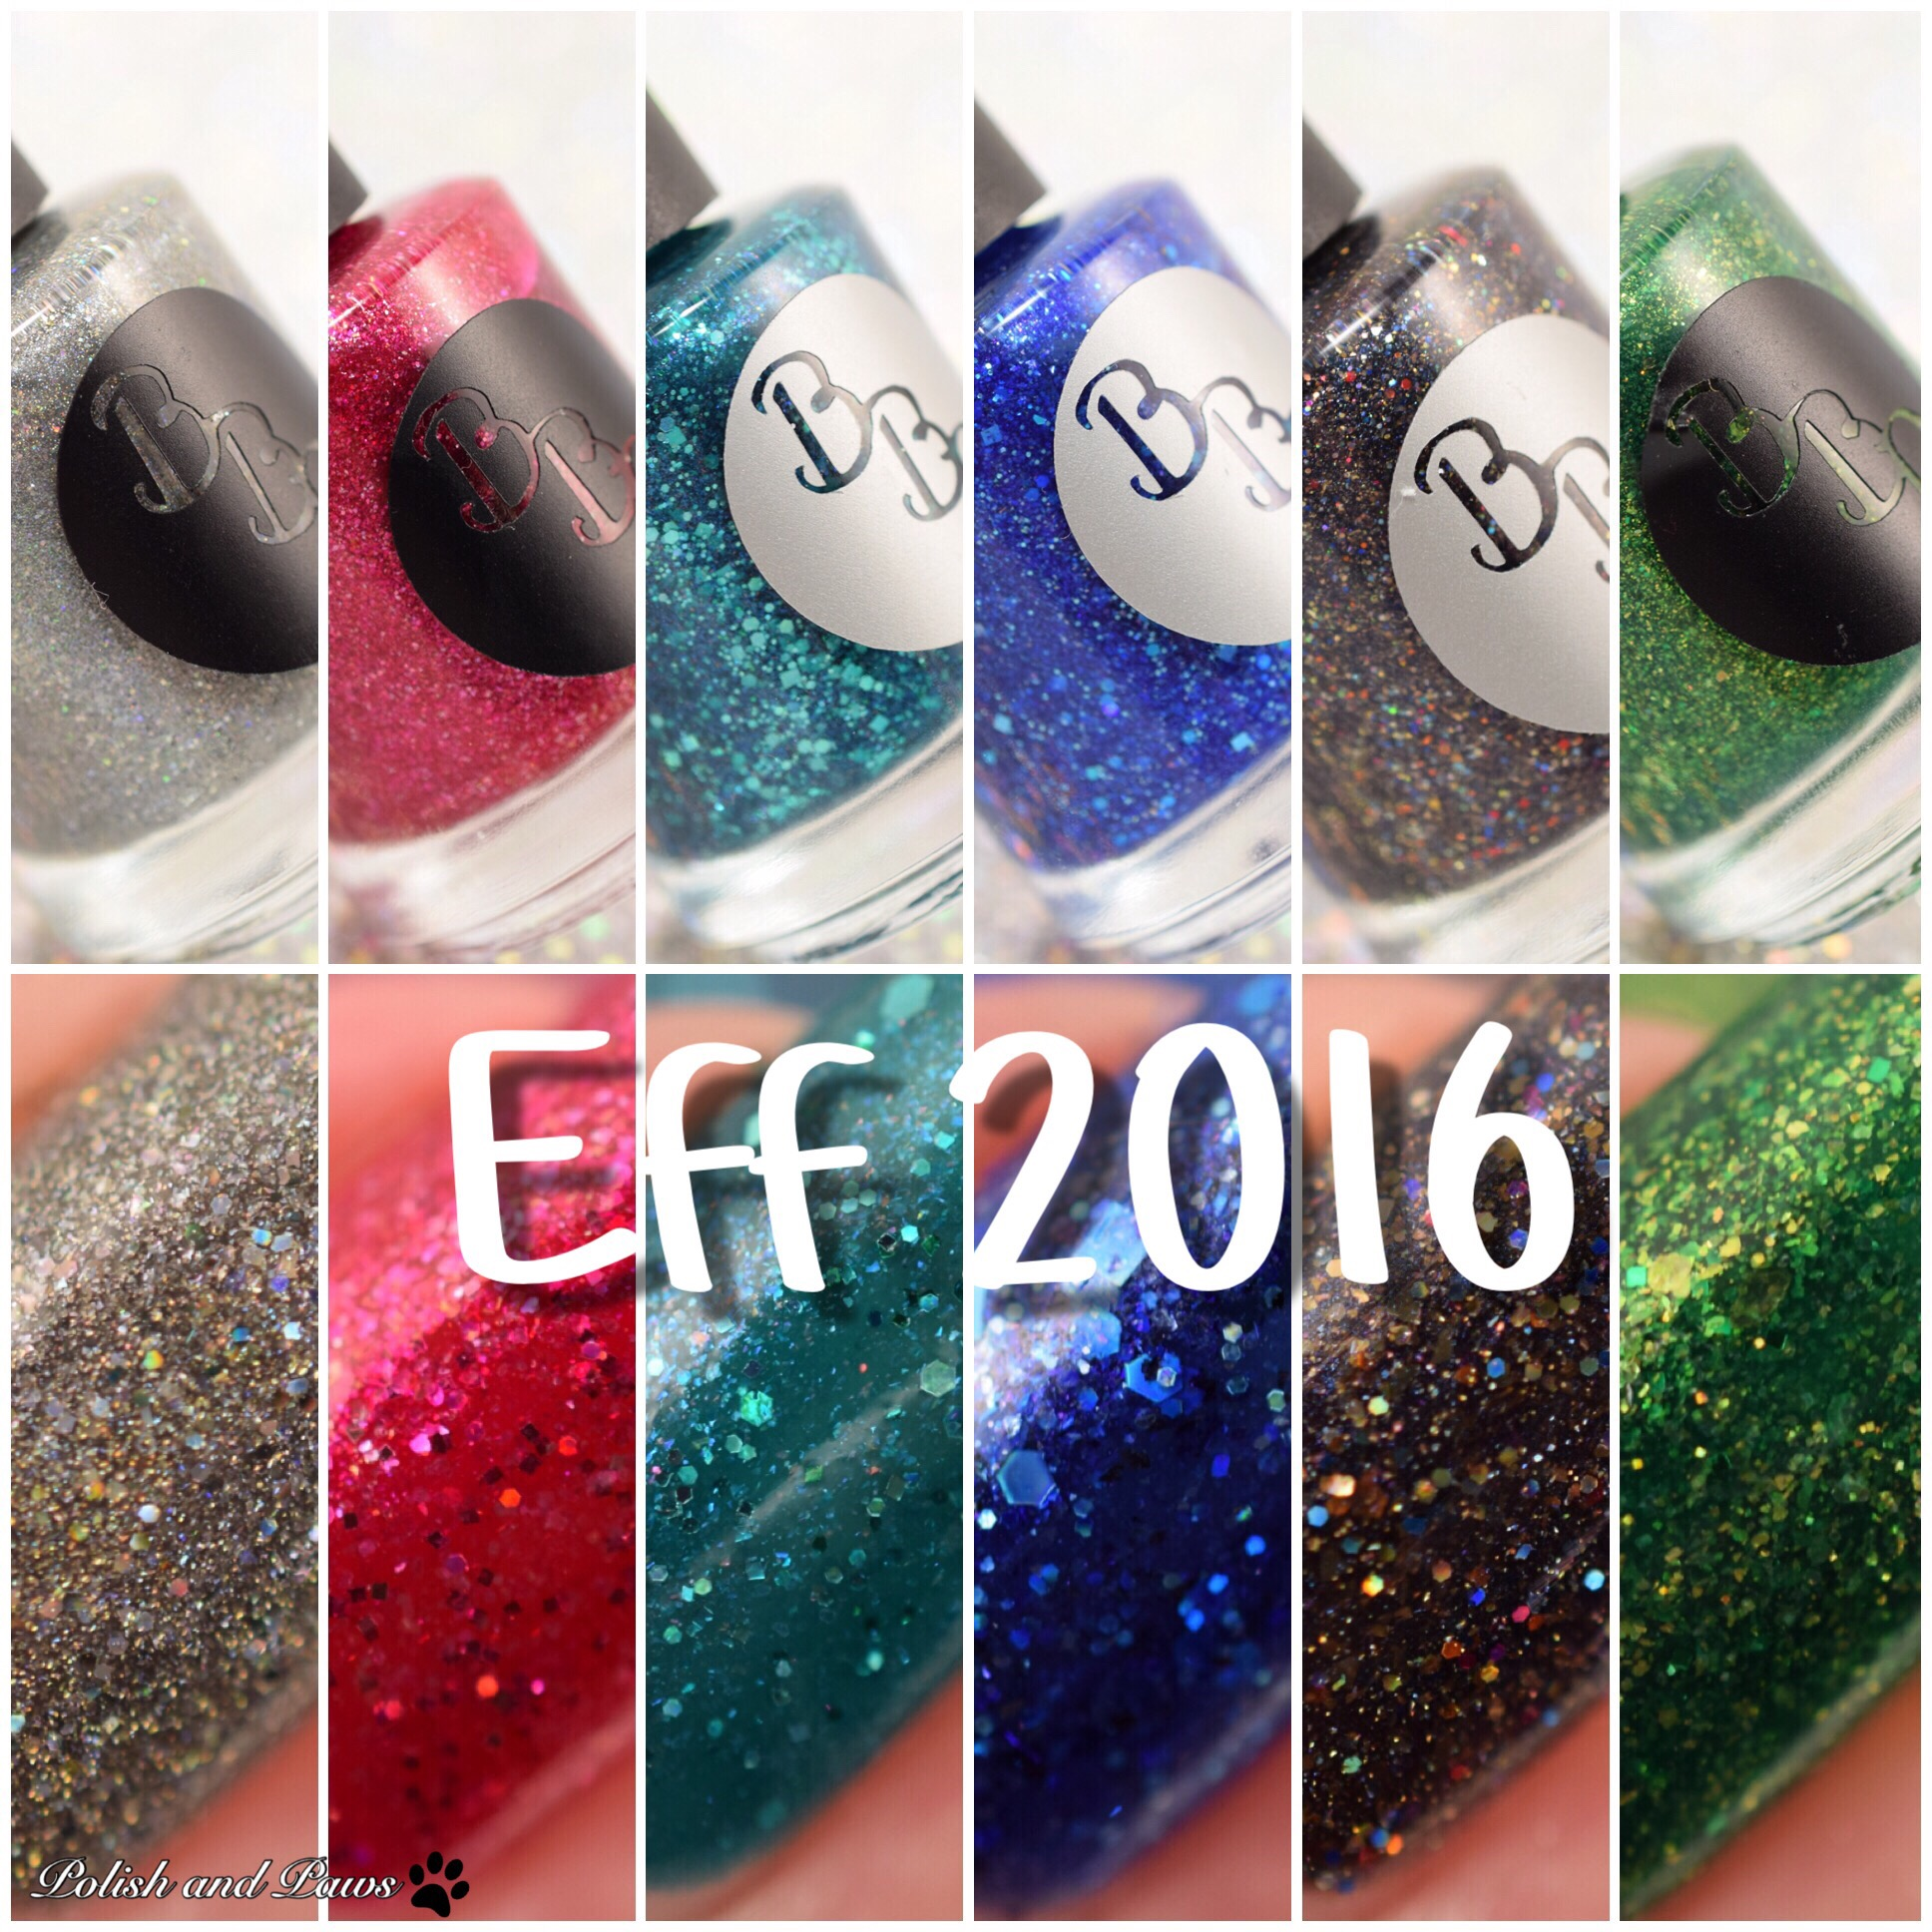 Bad Bitch Polish Eff 25 Collection   Polish and Paws